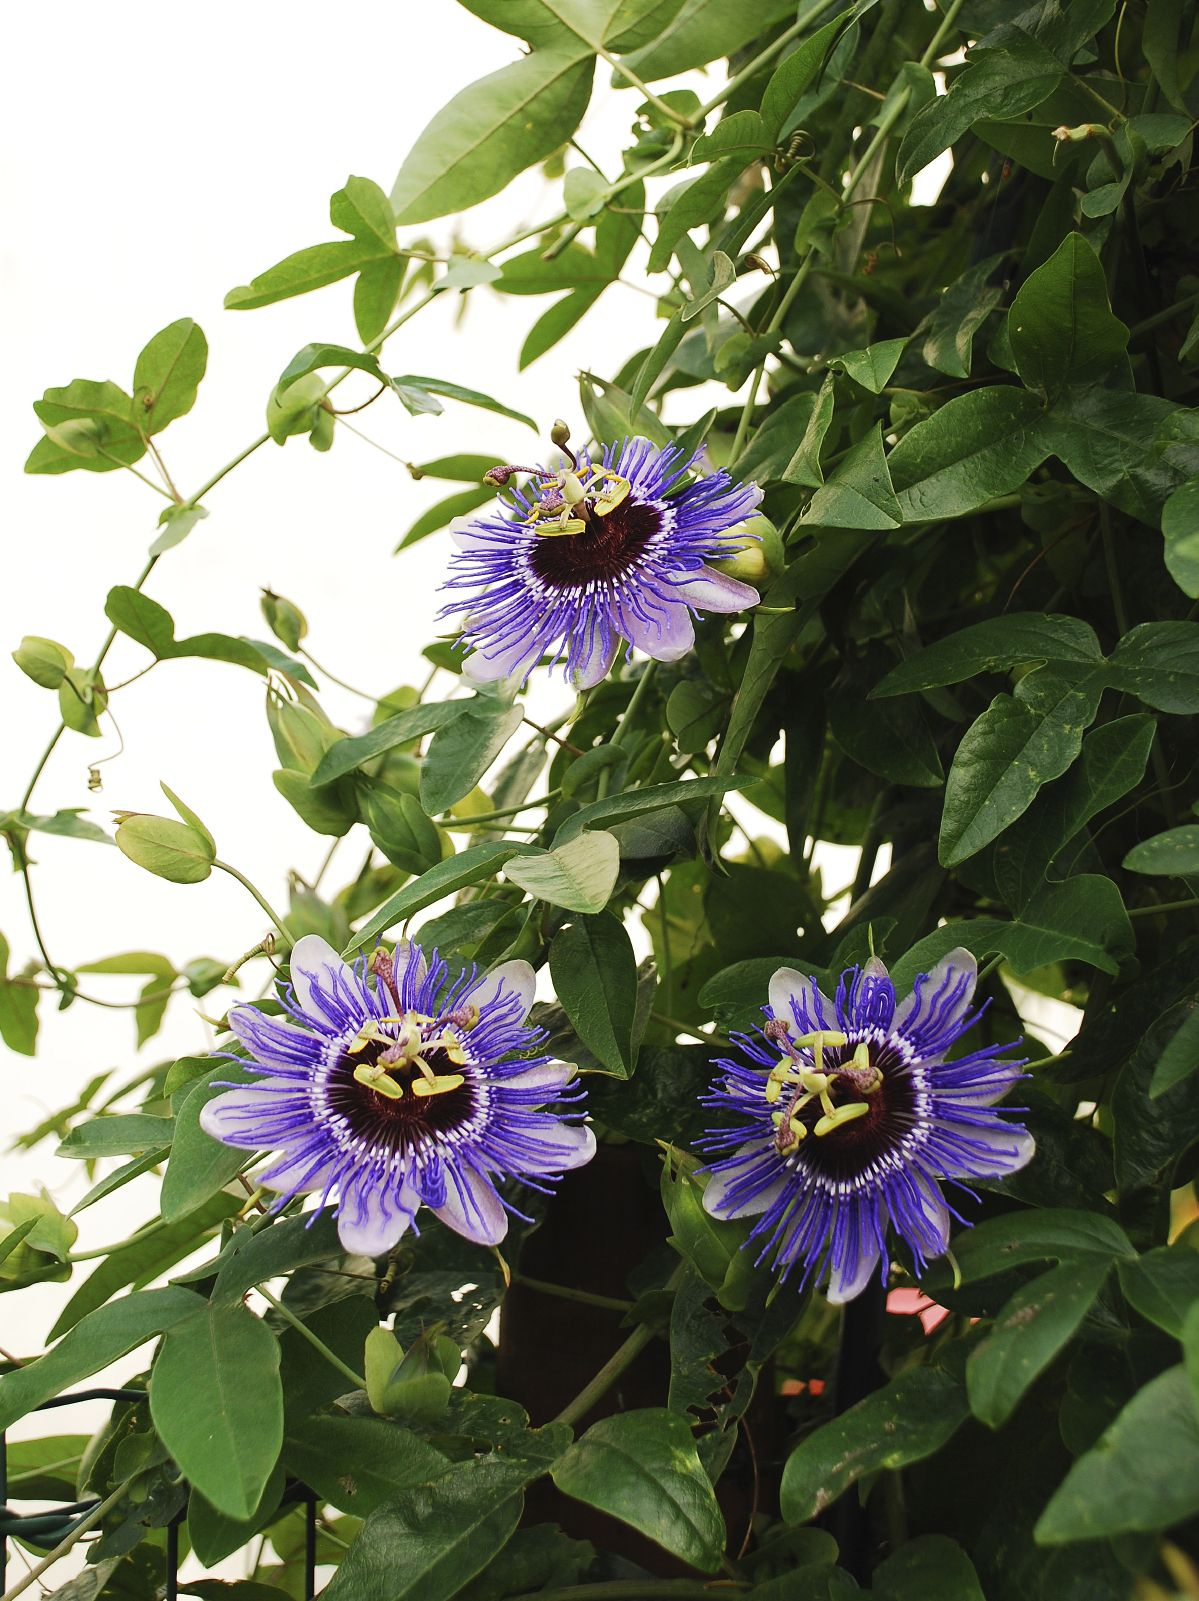 Passion flower vines are great to grow as attractive screens, floral coverups or simply over an arbor as decorative shading. Caring for these intricate flowers includes properly feeding passion flower vines. This article will help.